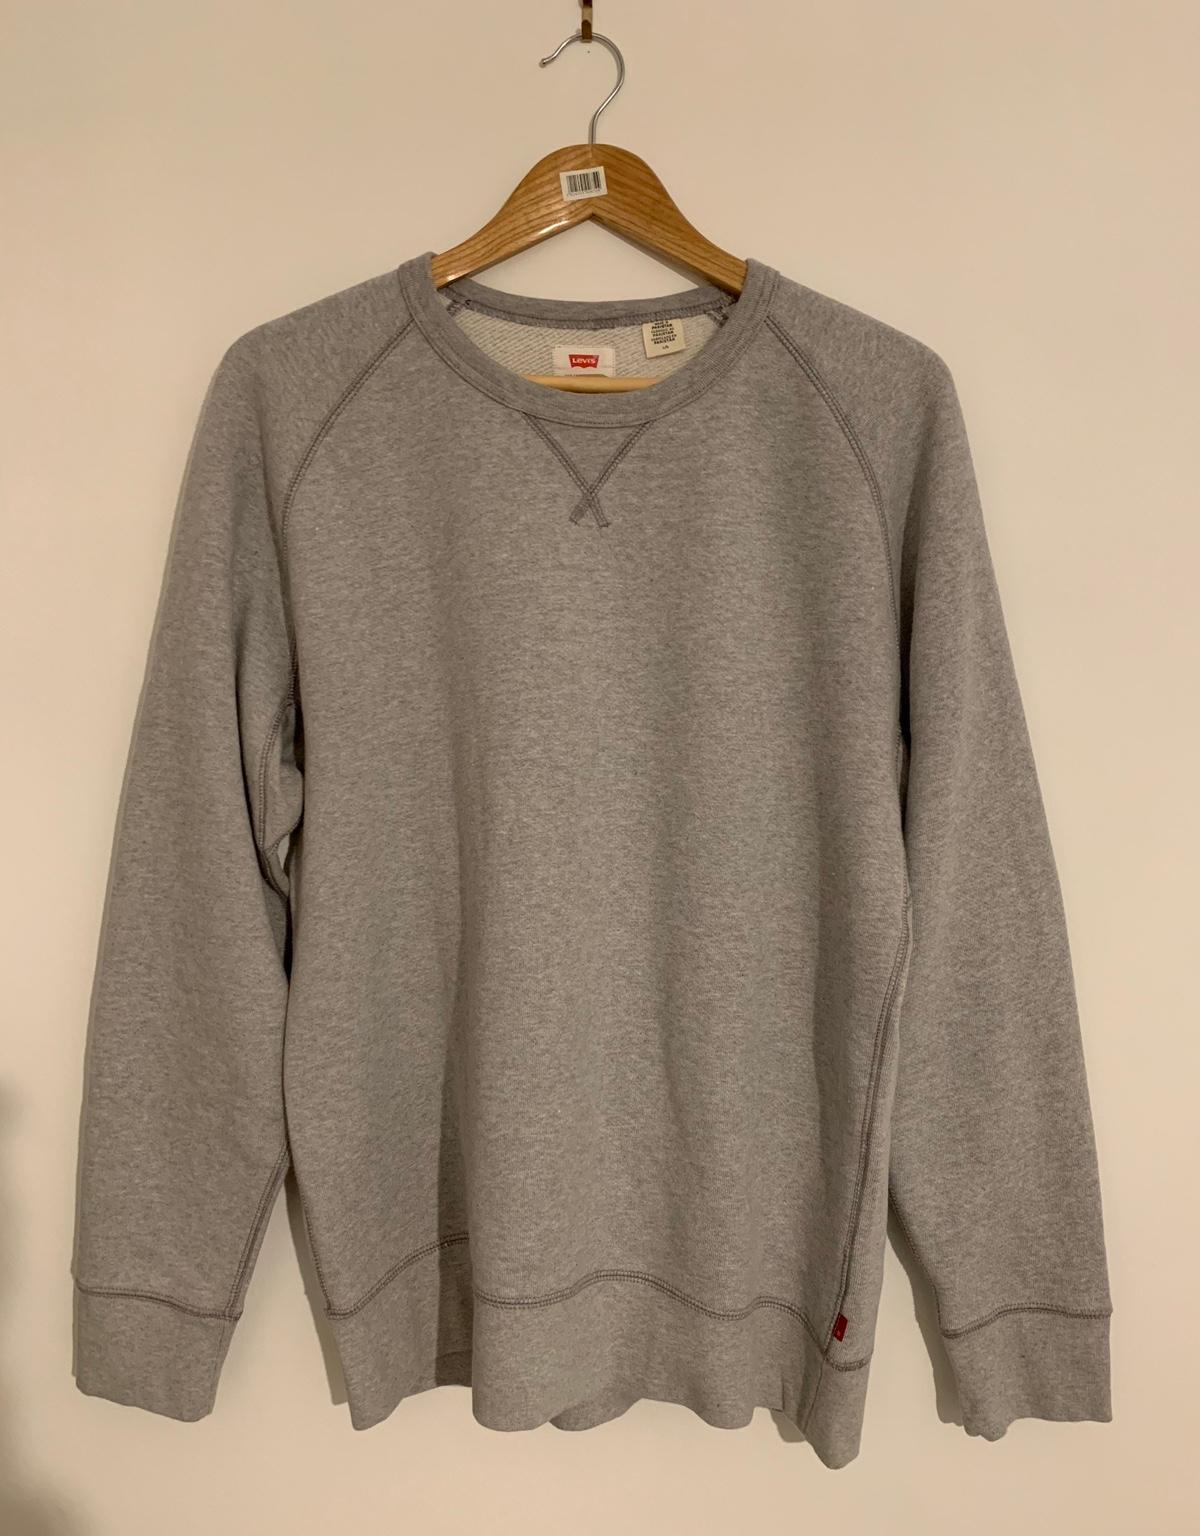 21104dc4a29 Levis Sweatshirt/Jumper - Large - Brand New